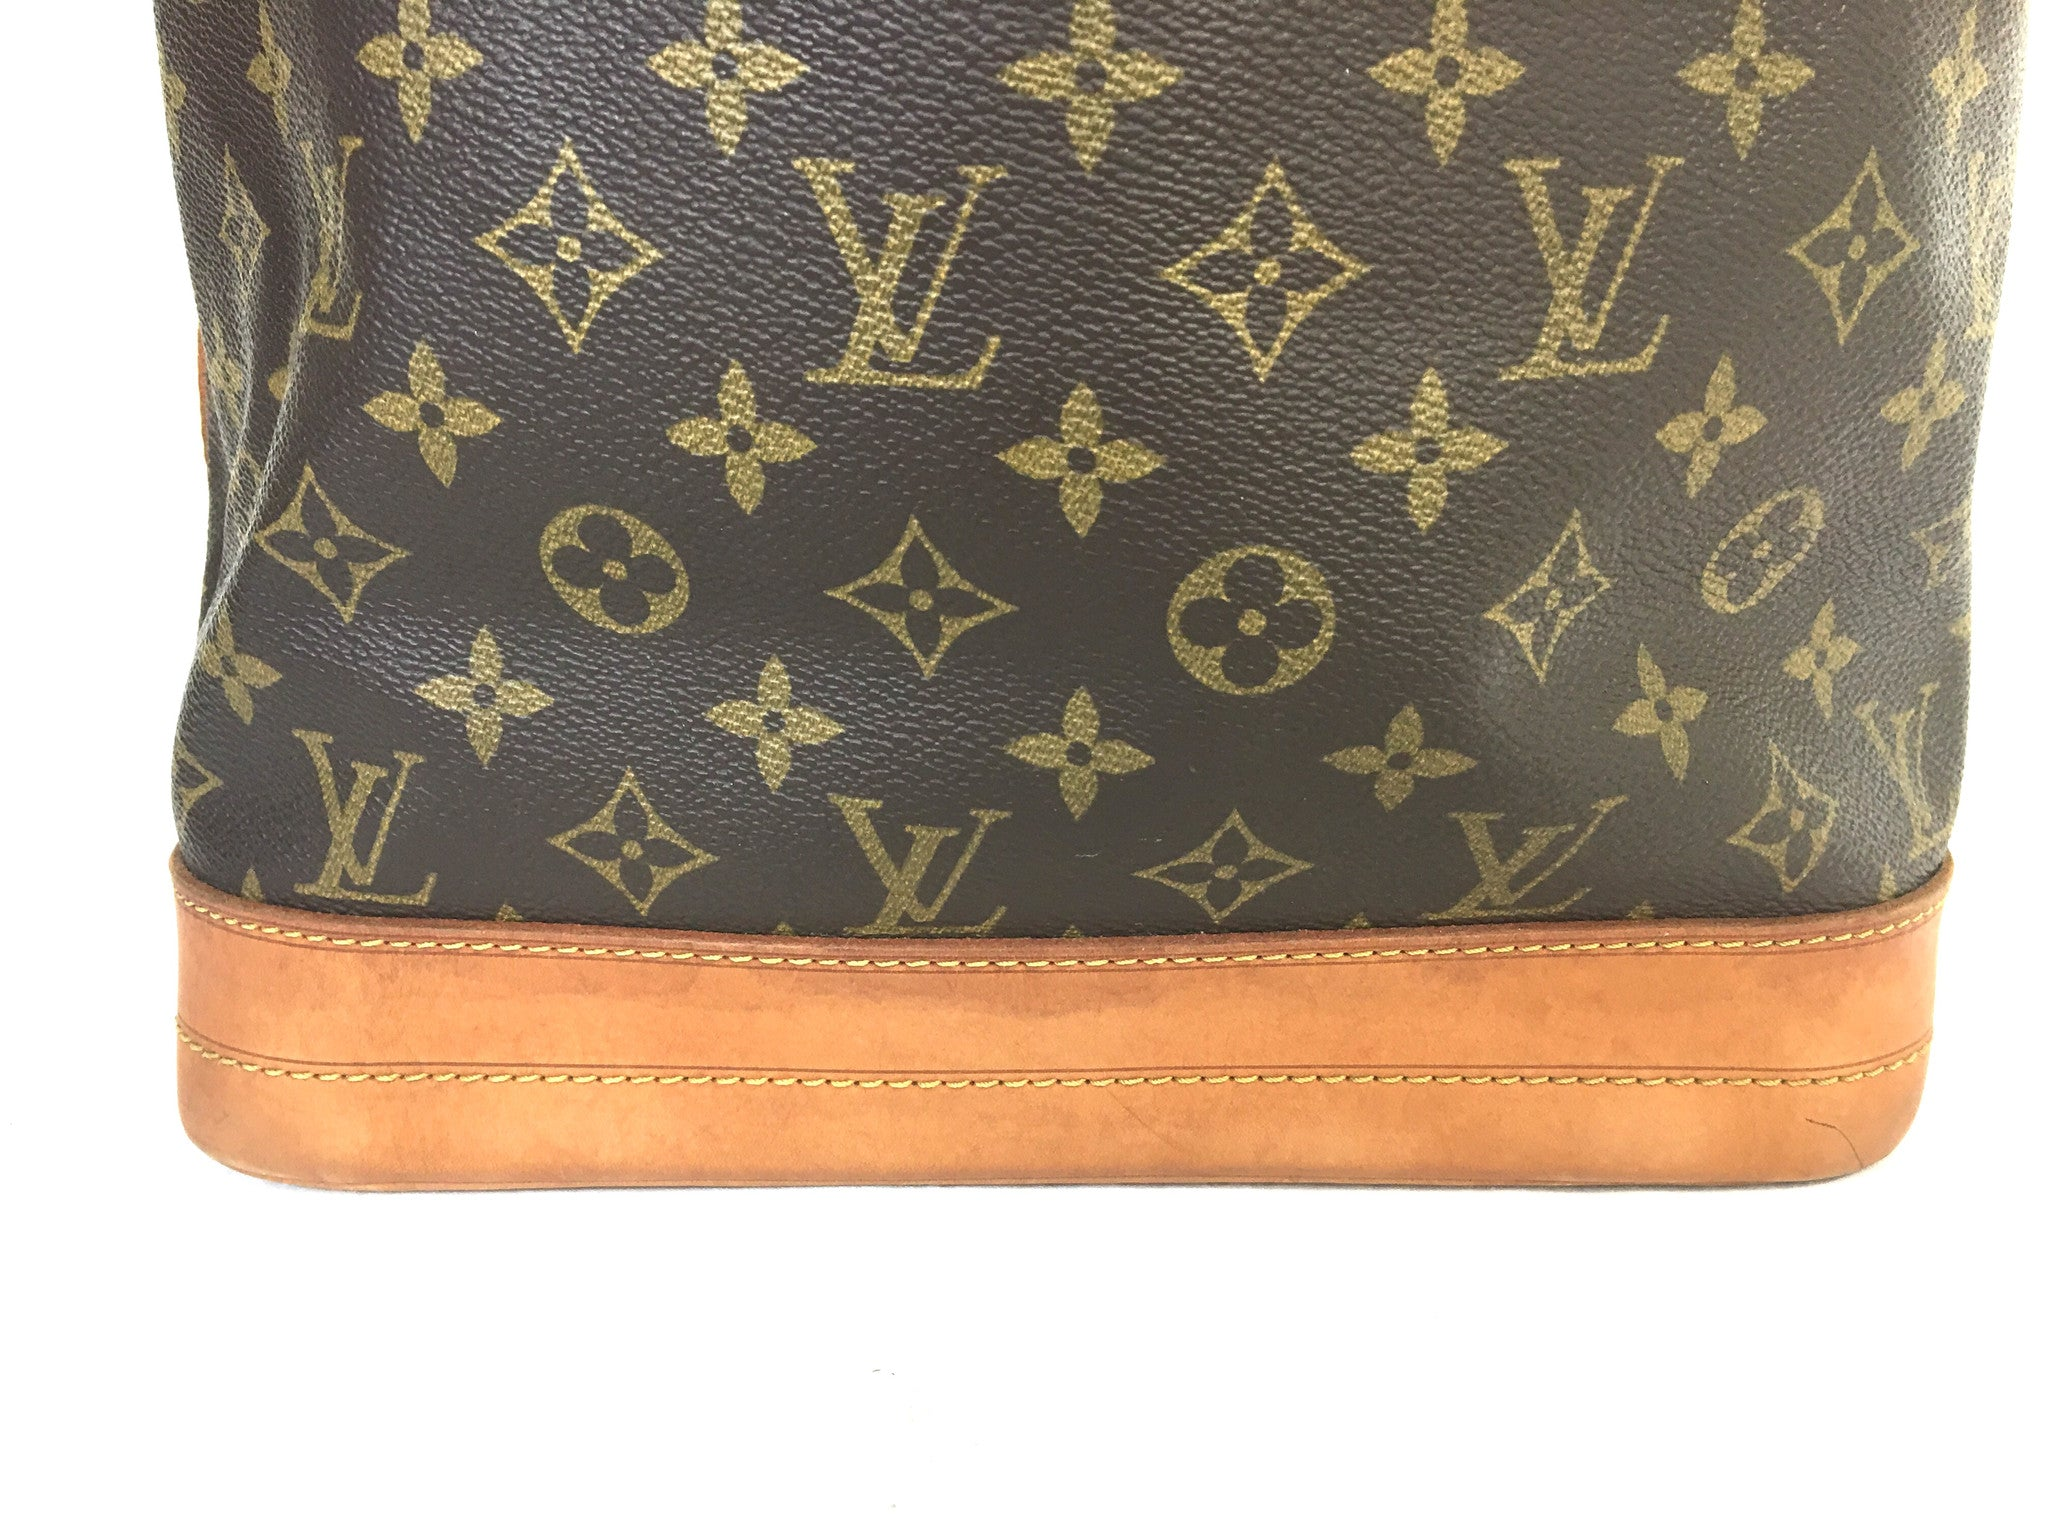 LOUIS VUITTON Noé GM Monogram Bucket Bag